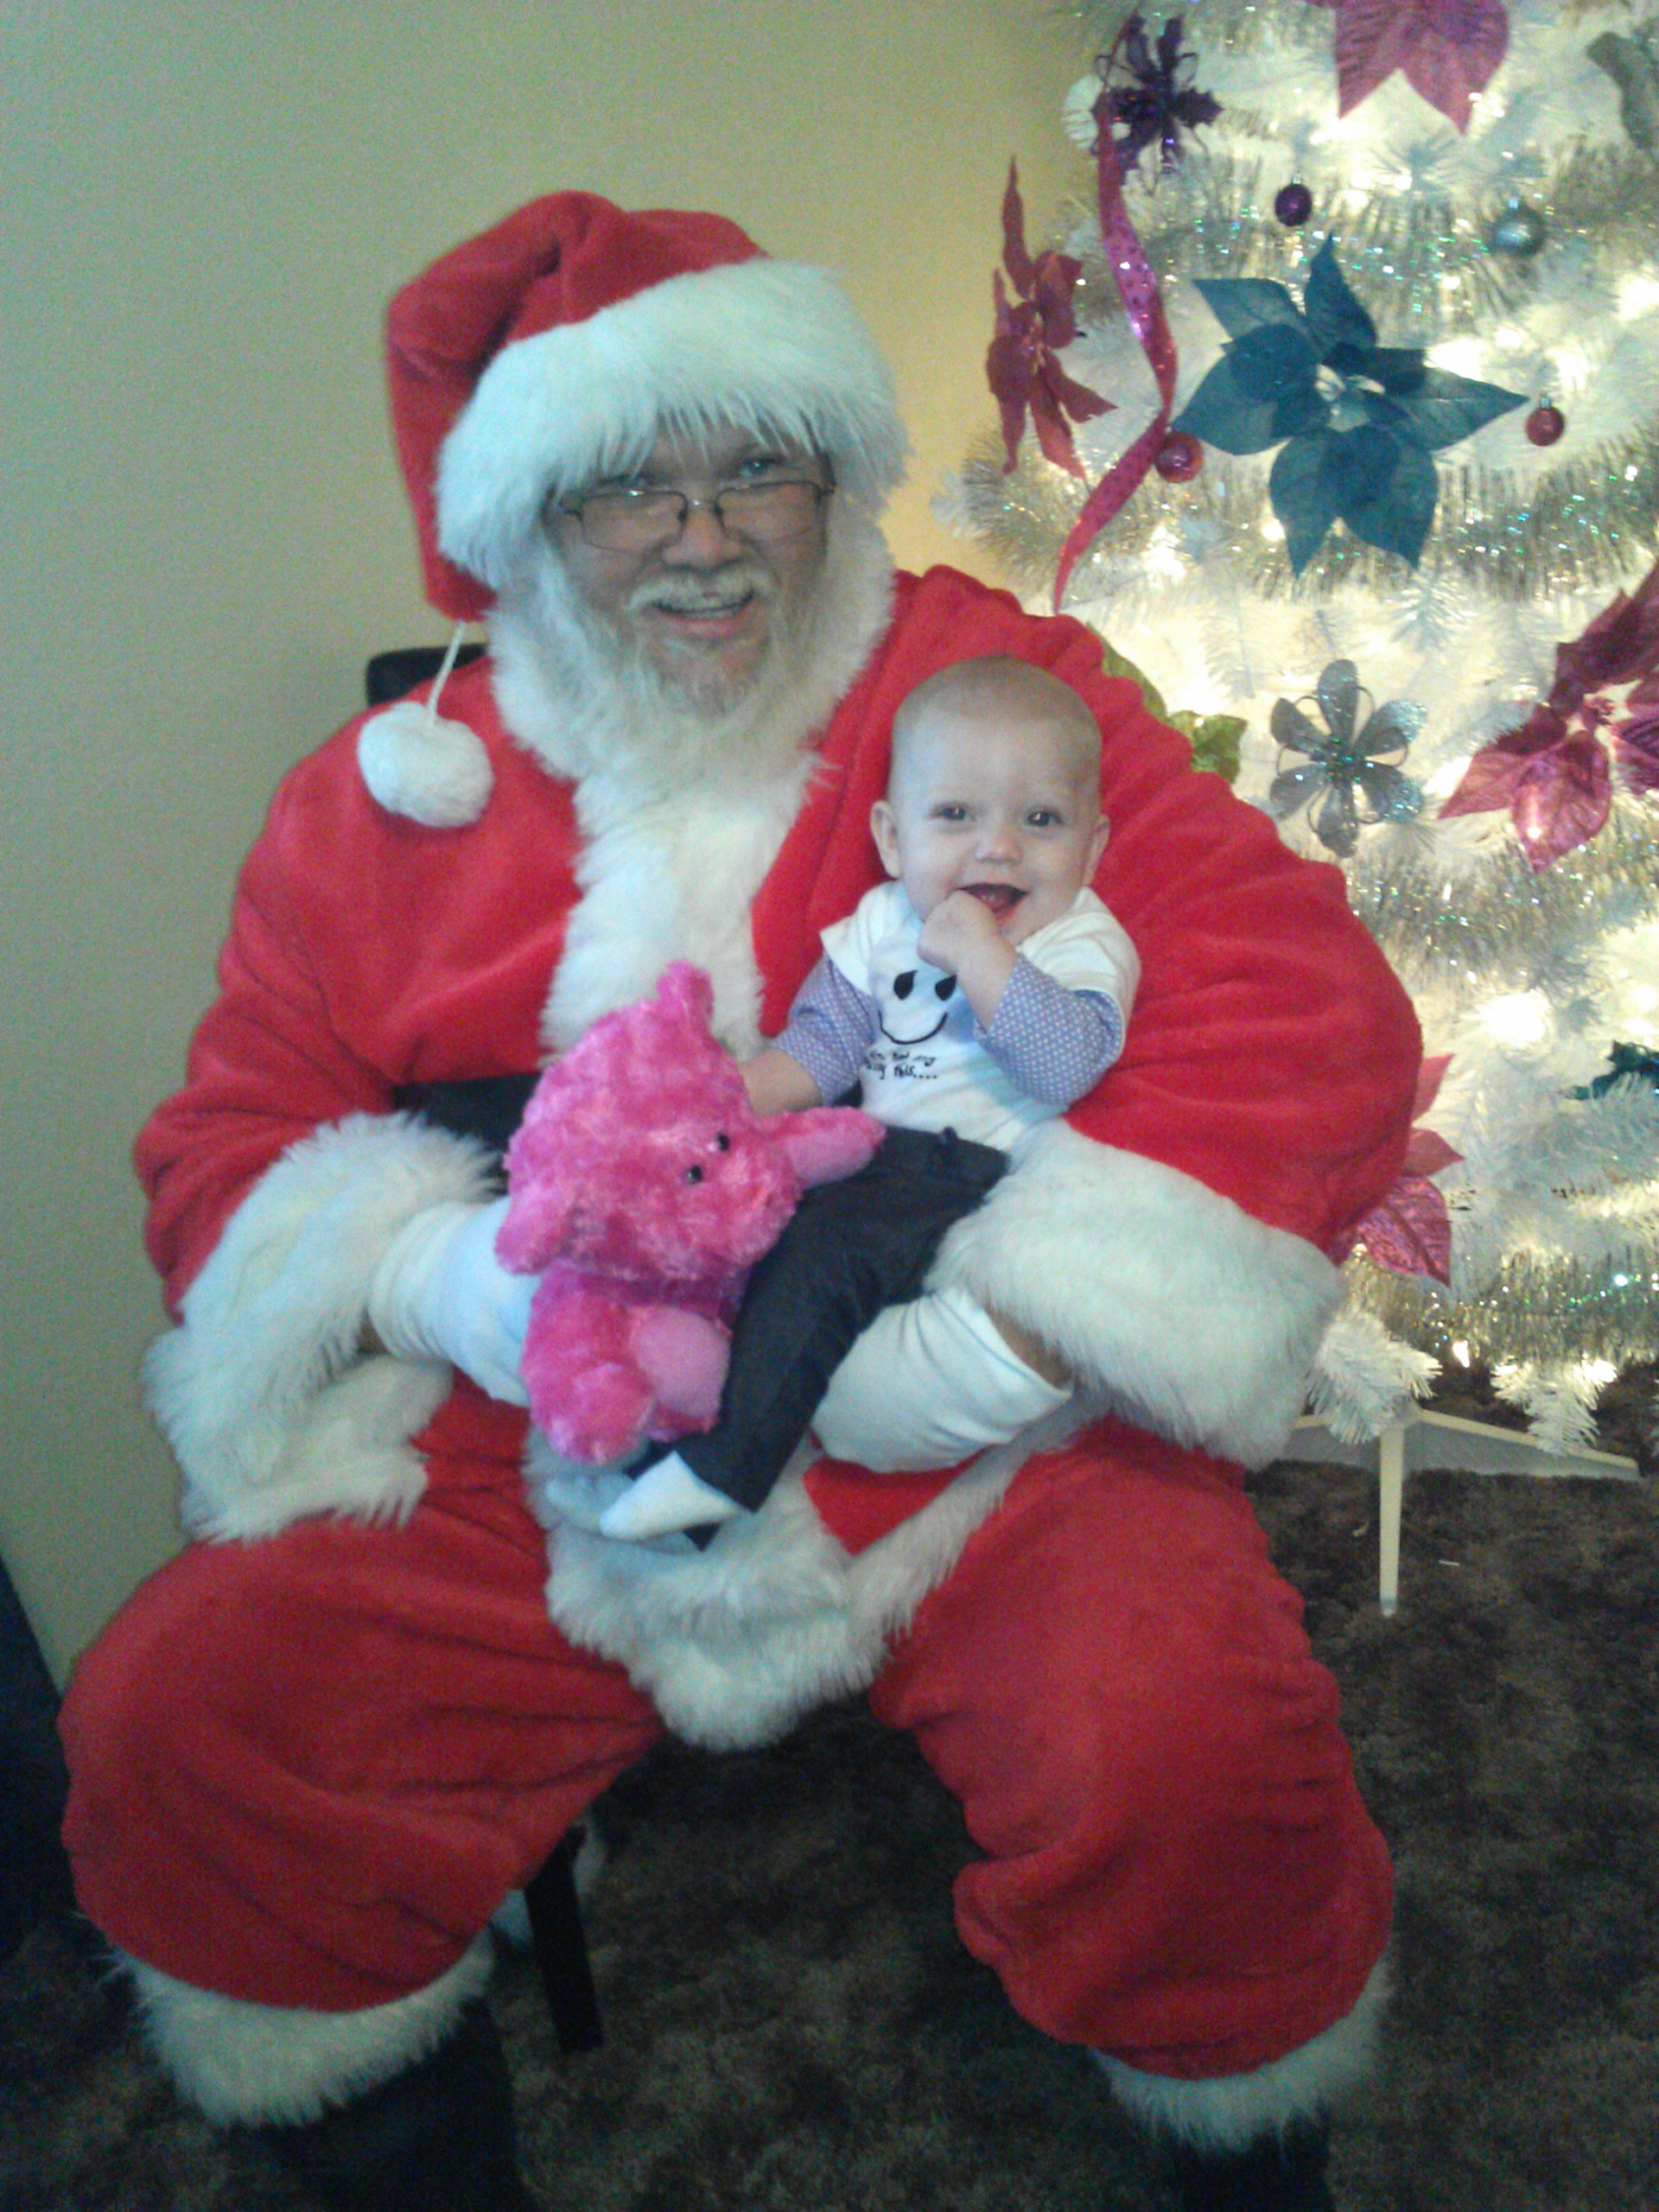 Little Macie and Santa, sent in by Jessica Yeakley